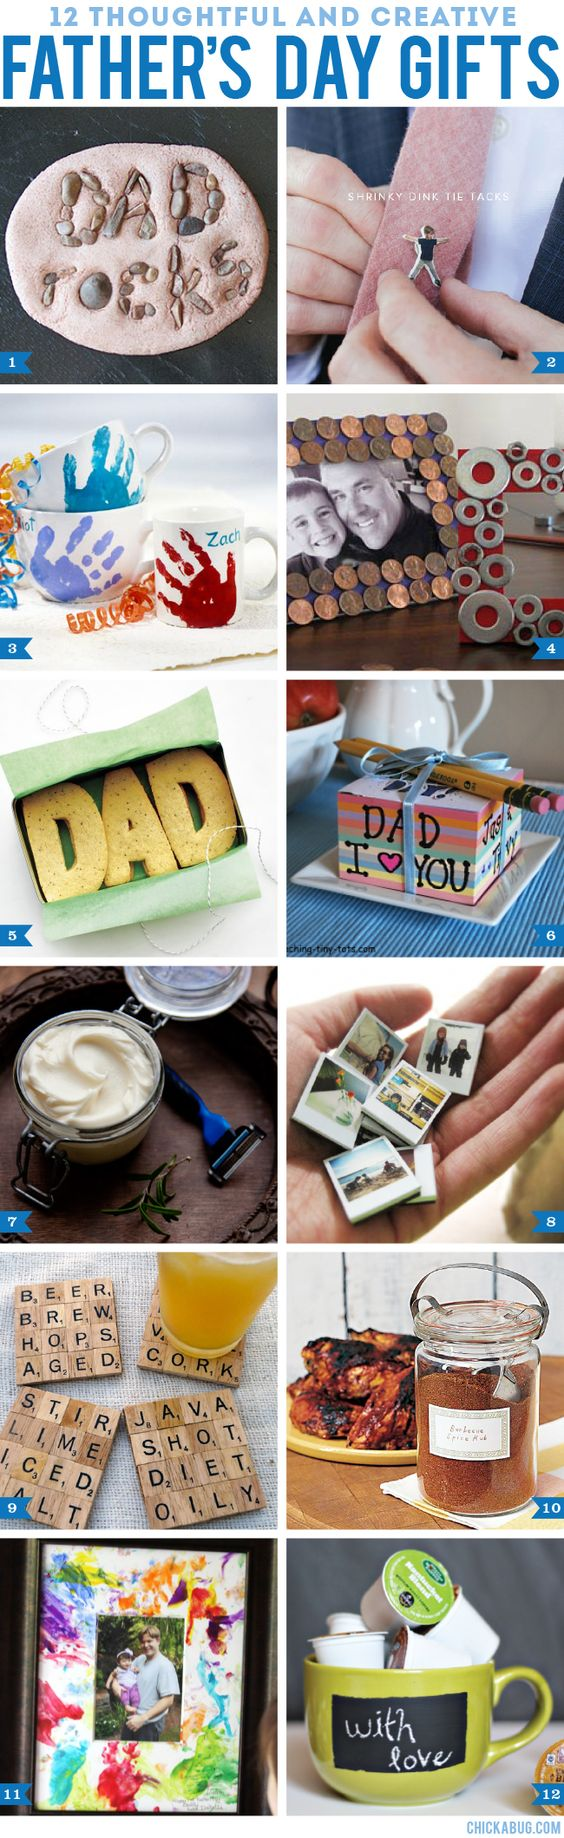 Pinterest the world s catalog of ideas for Thoughtful gifts for dad from daughter